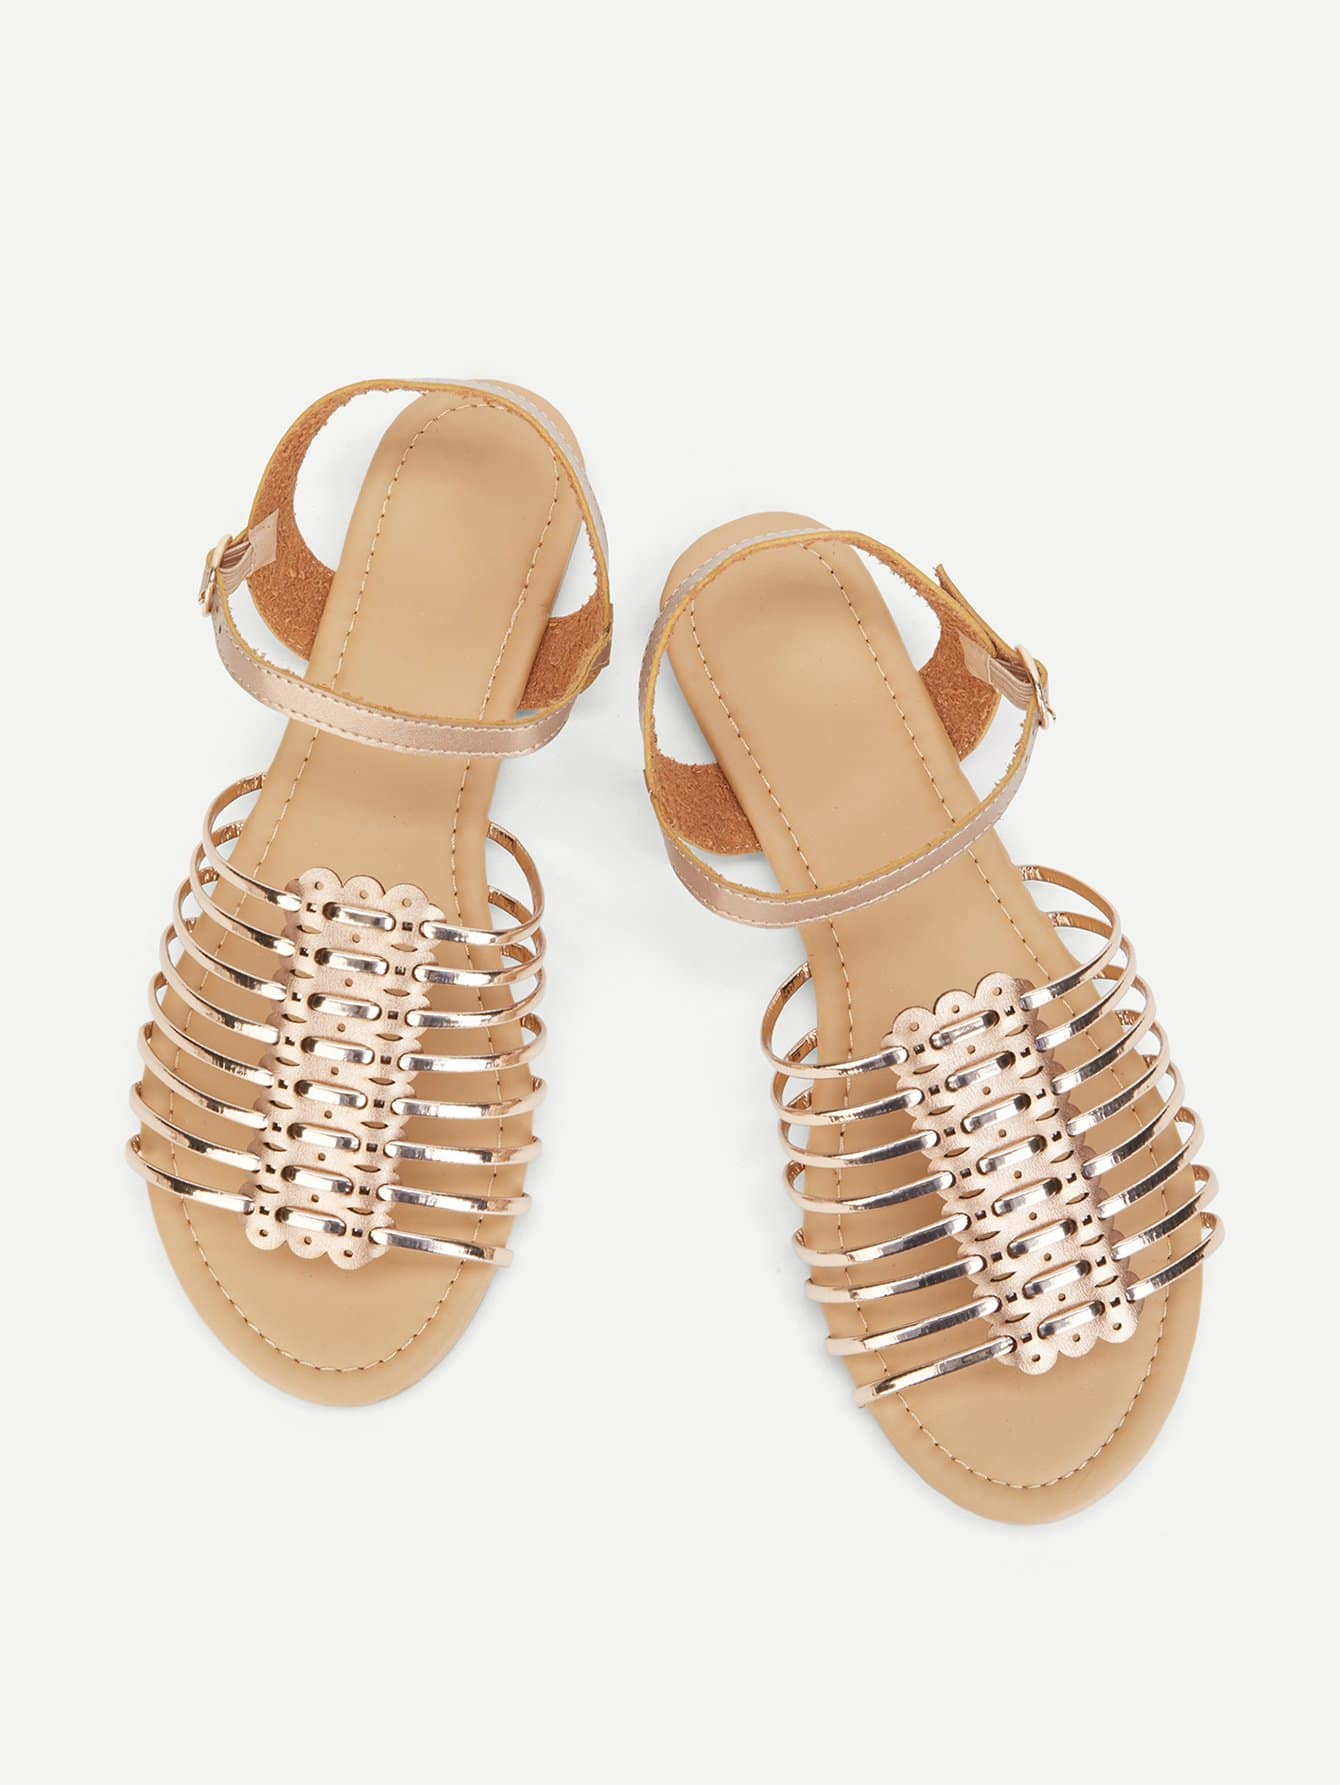 Metallic Peep Toe Flat Sandals xda 2018 new summer sandals women flat shoes bandage bohemia leisure lady casual sandals peep toe outdoor fashion sandals f171